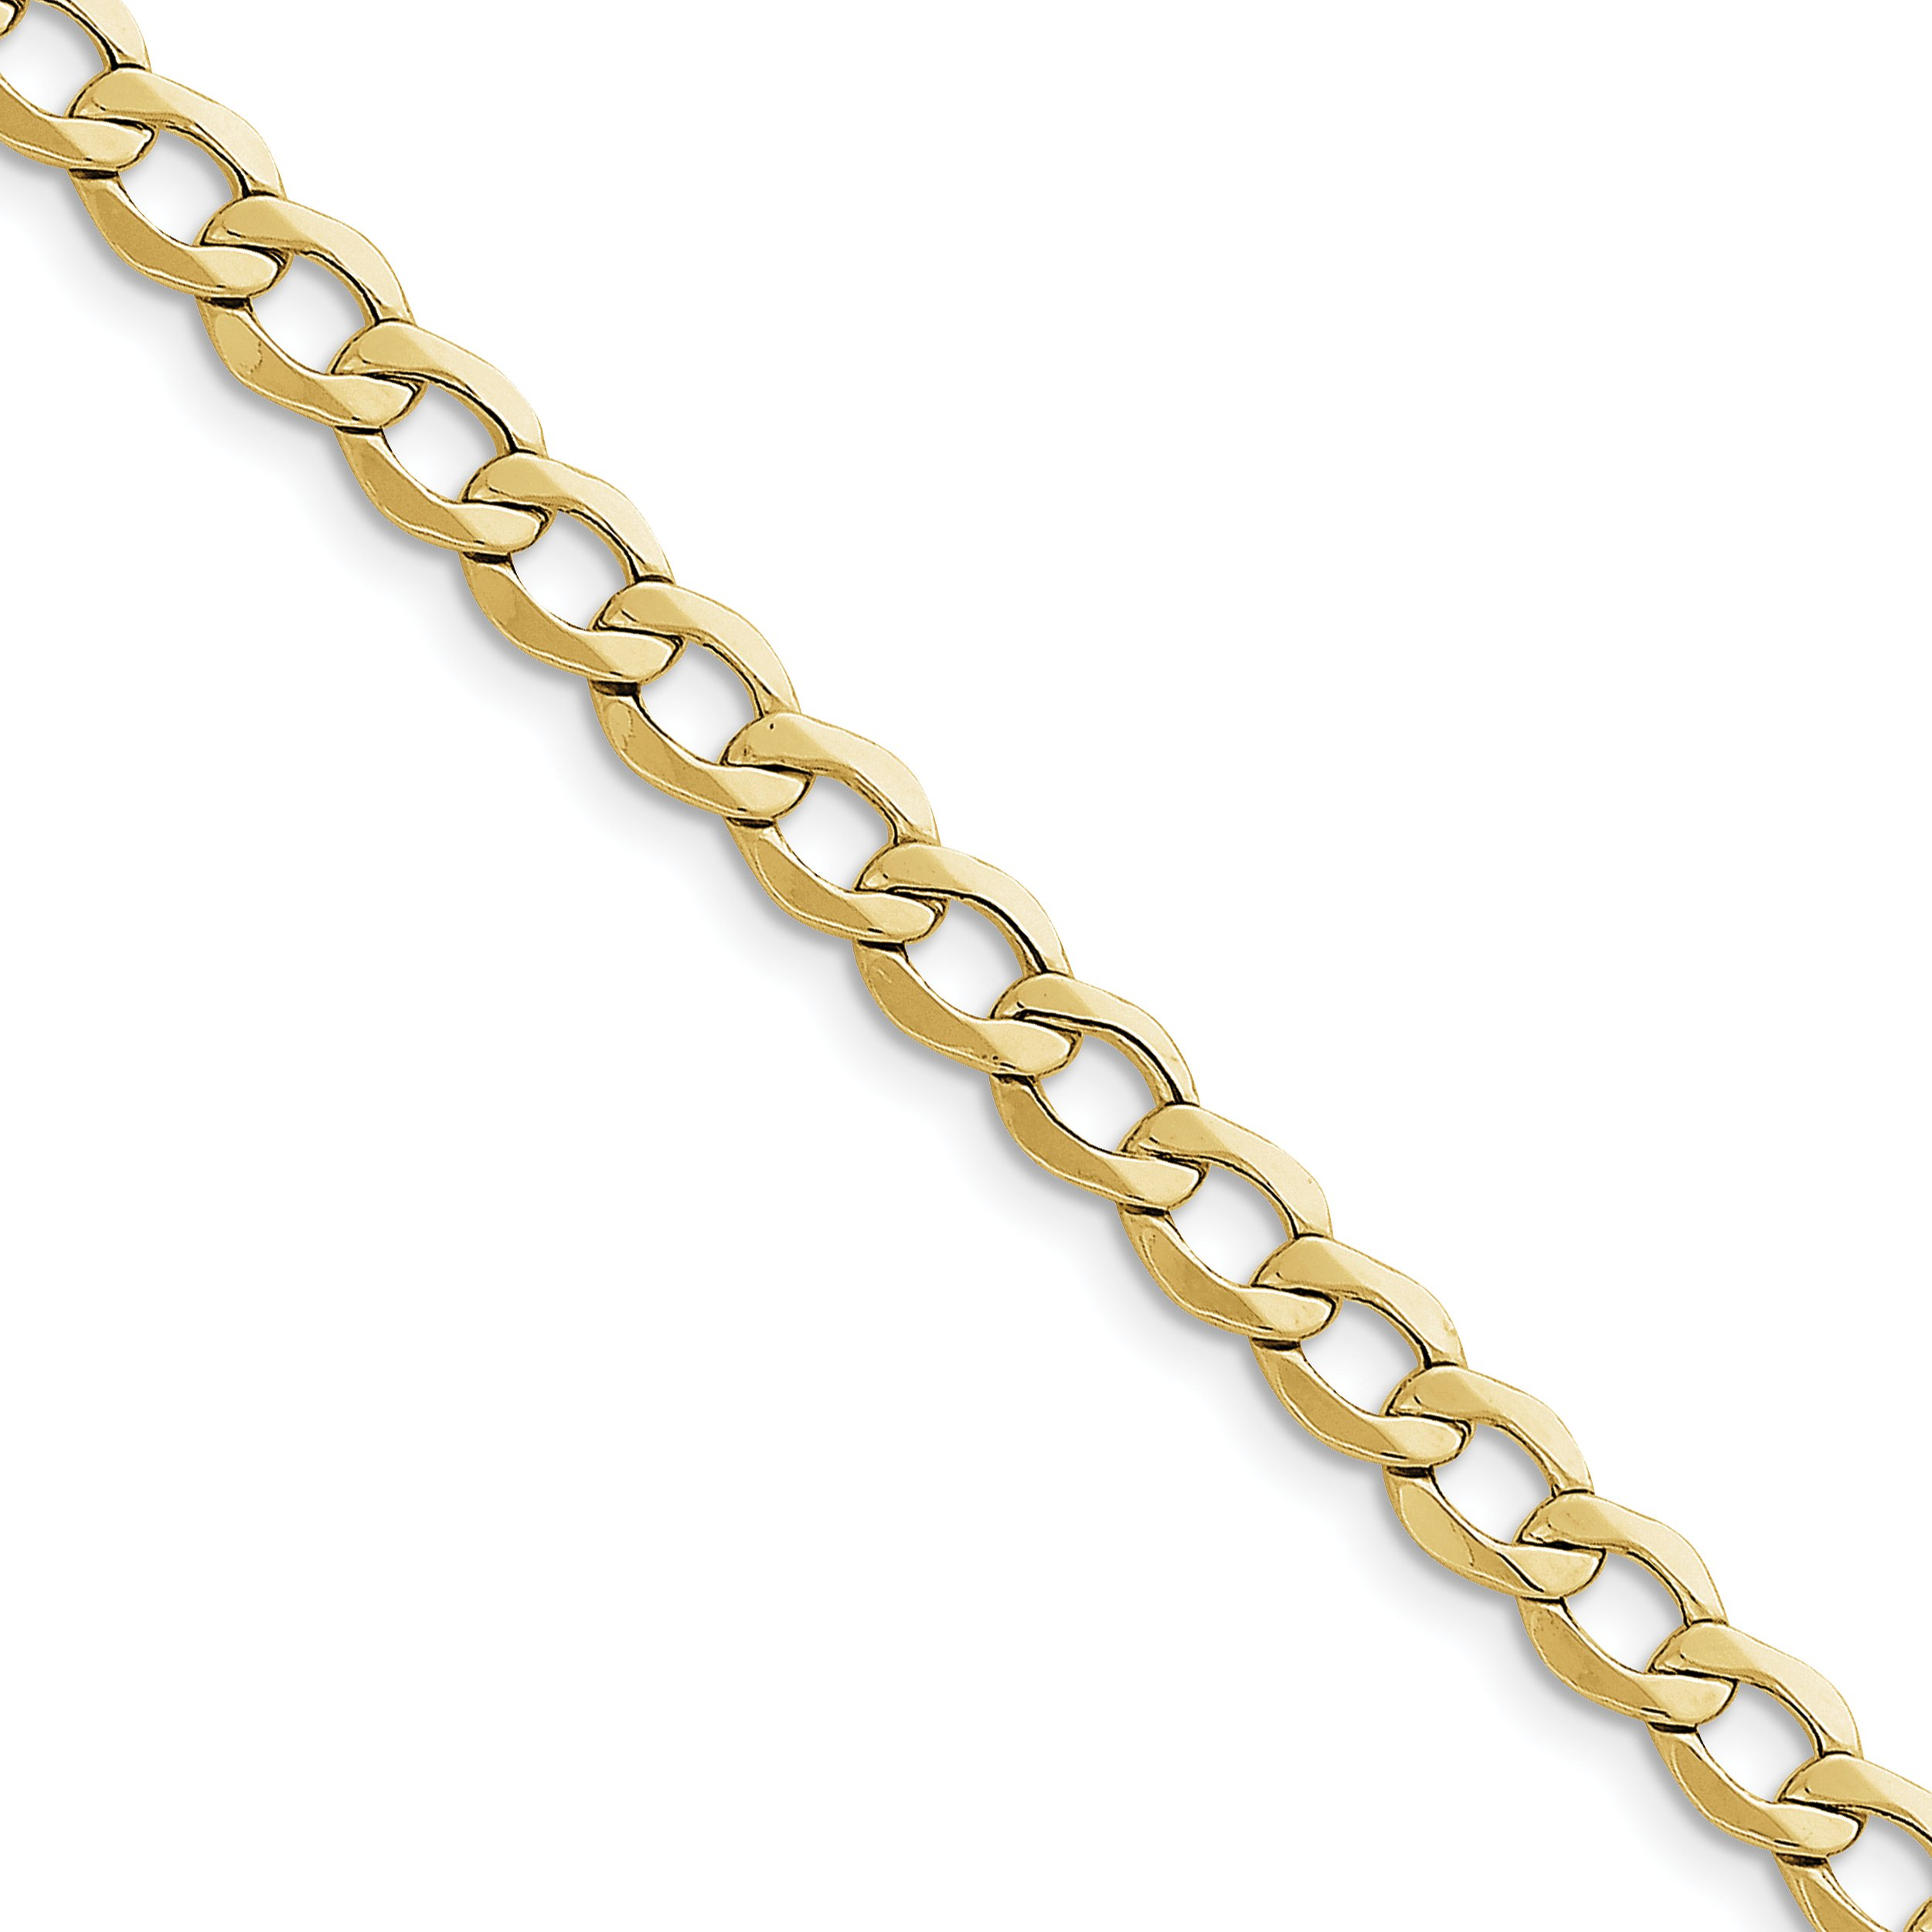 ICE CARATS 10k Yellow Gold 7mm Curb Cuban Link Chain Anklet Ankle Beach Bracelet 9 Inch Fine Jewelry Gift Set For Women Heart